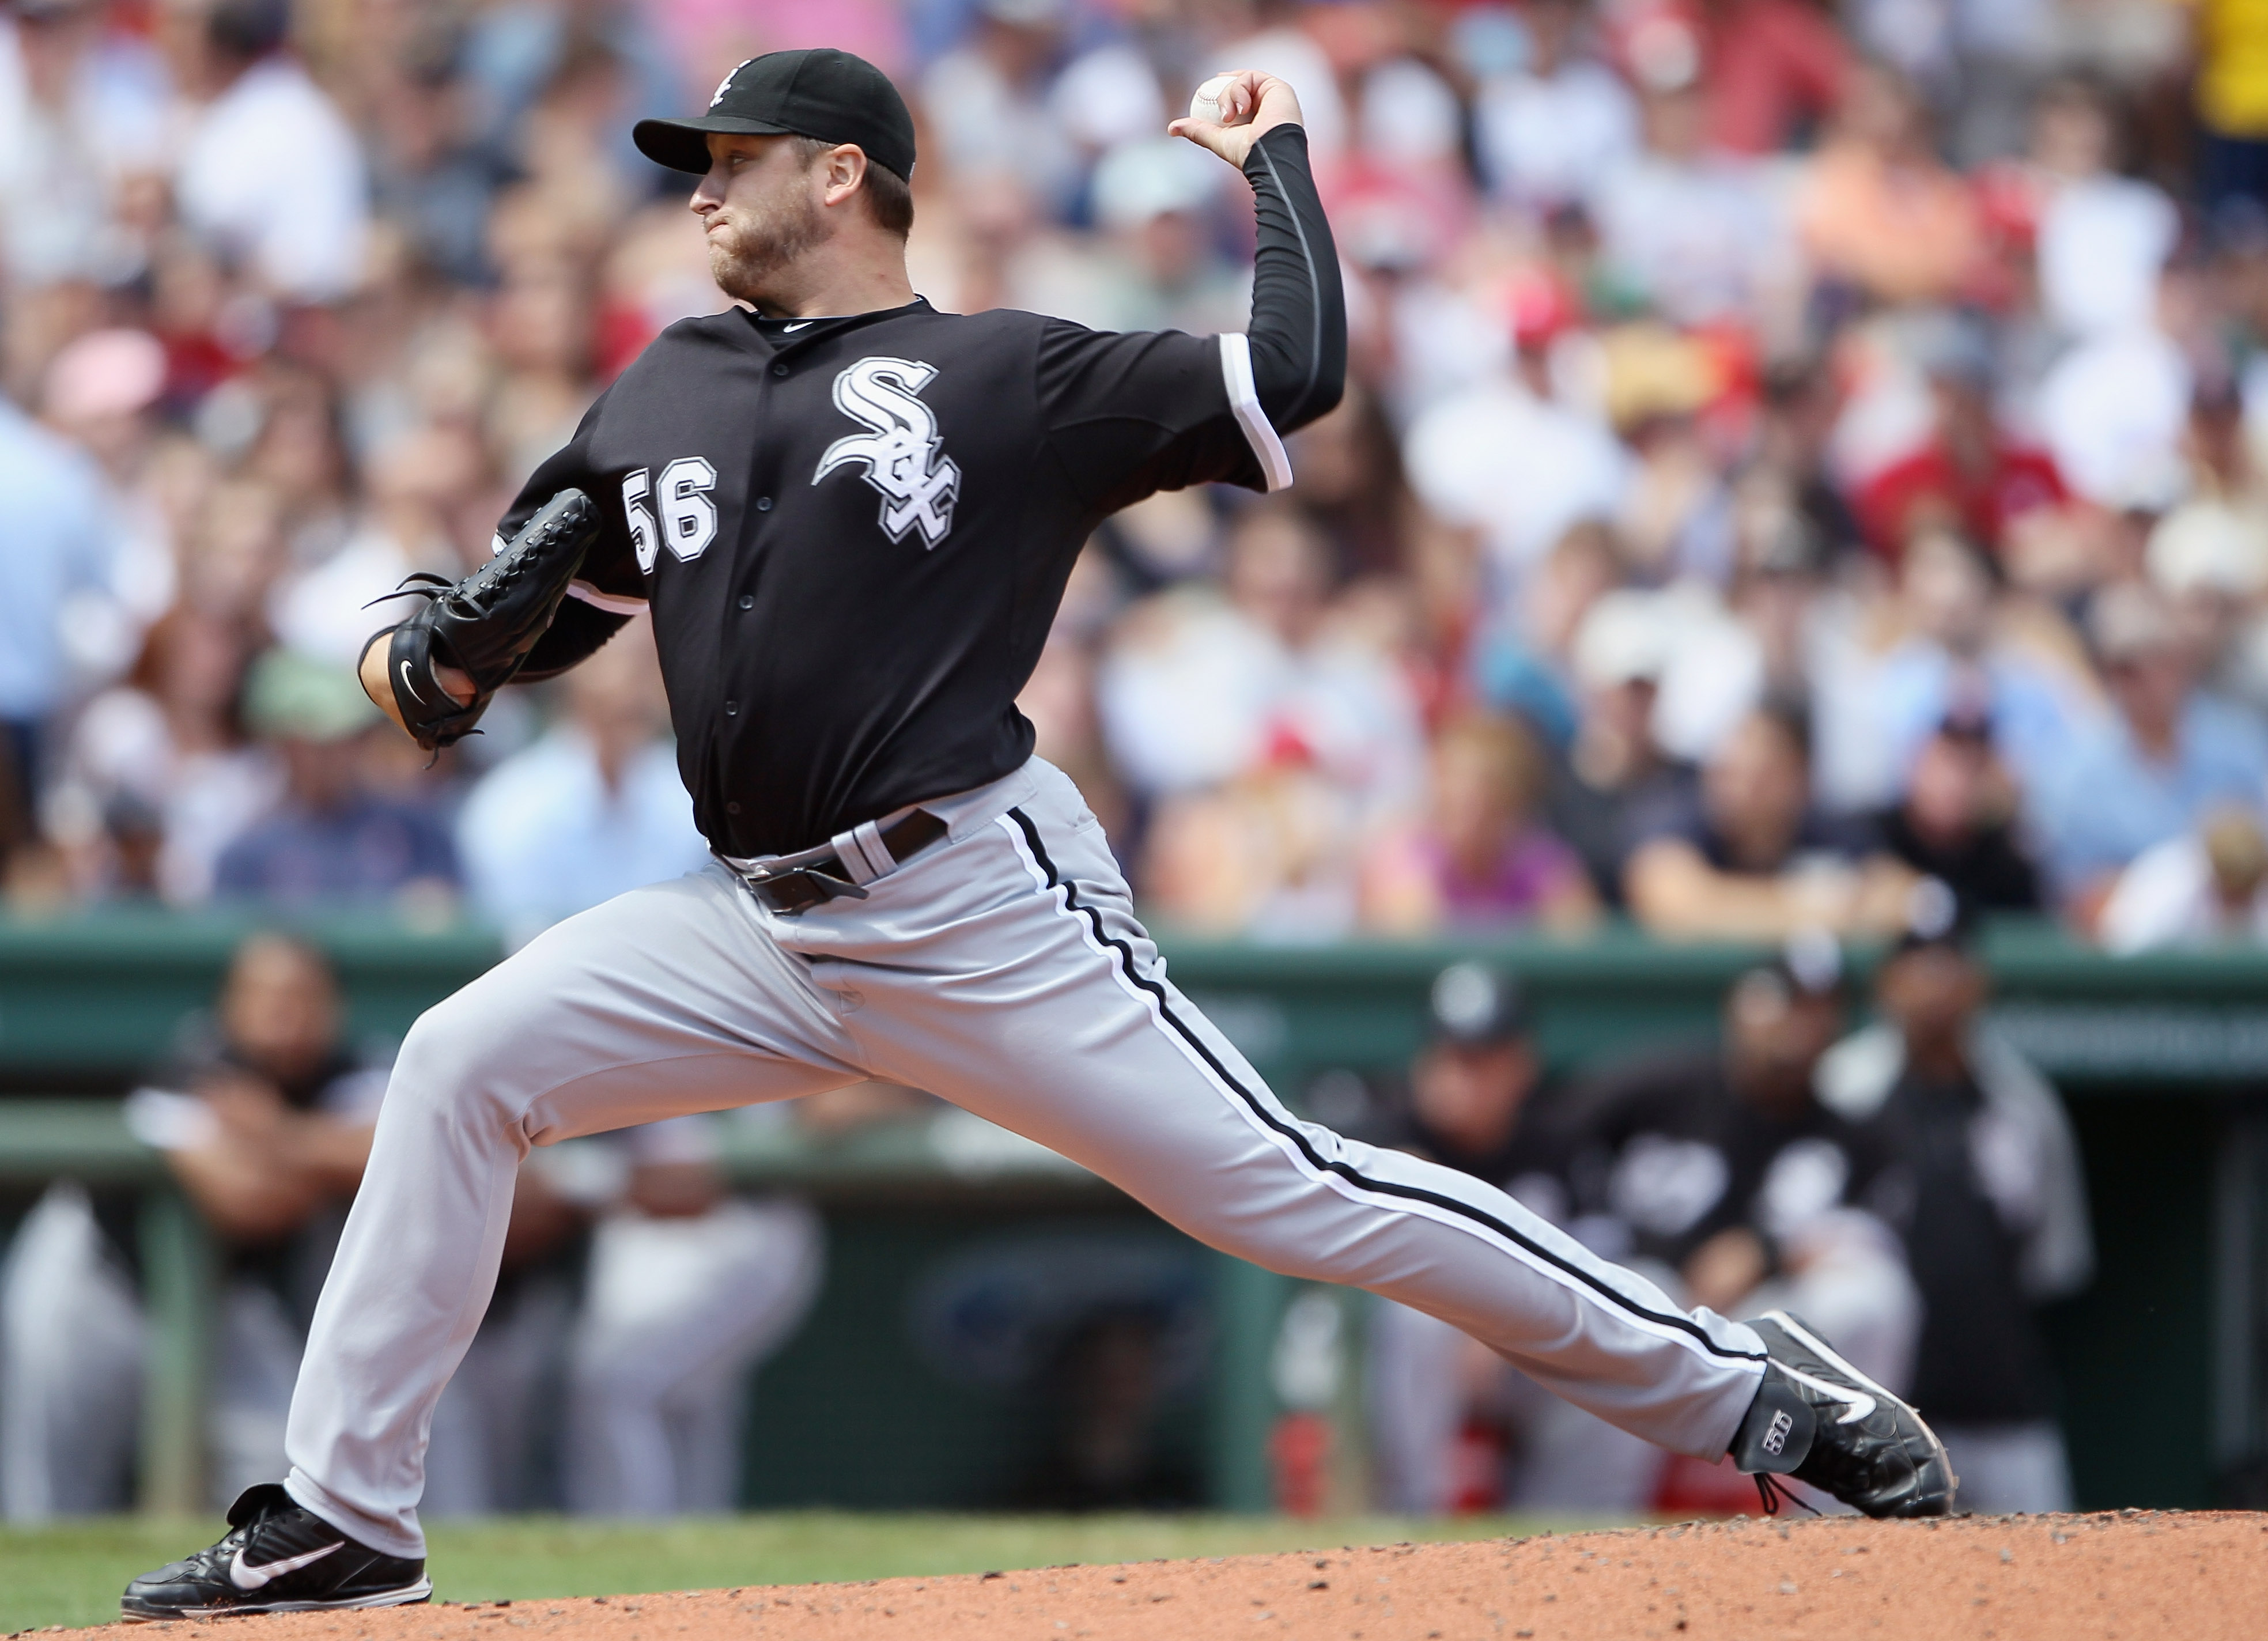 BOSTON - SEPTEMBER 05:  Mark Buehrle #56 of the Chicago White Sox delivers a pitch in the first inning against the Boston Red Sox on September 5, 2010 at Fenway Park in Boston, Massachusetts.  (Photo by Elsa/Getty Images)